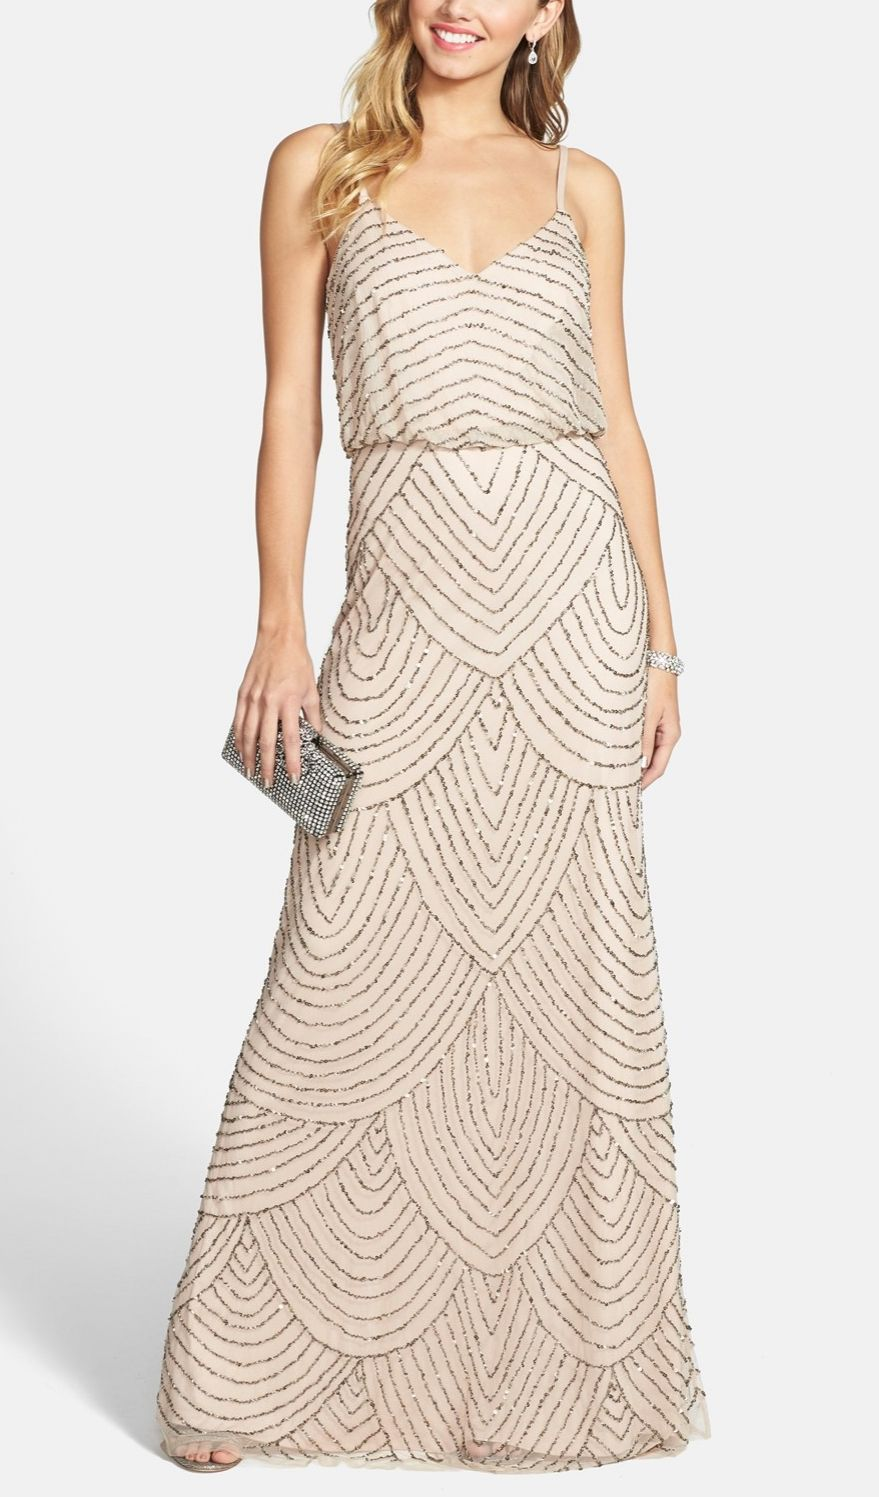 This stunning embellished gown is perfect for a formal wedding ...